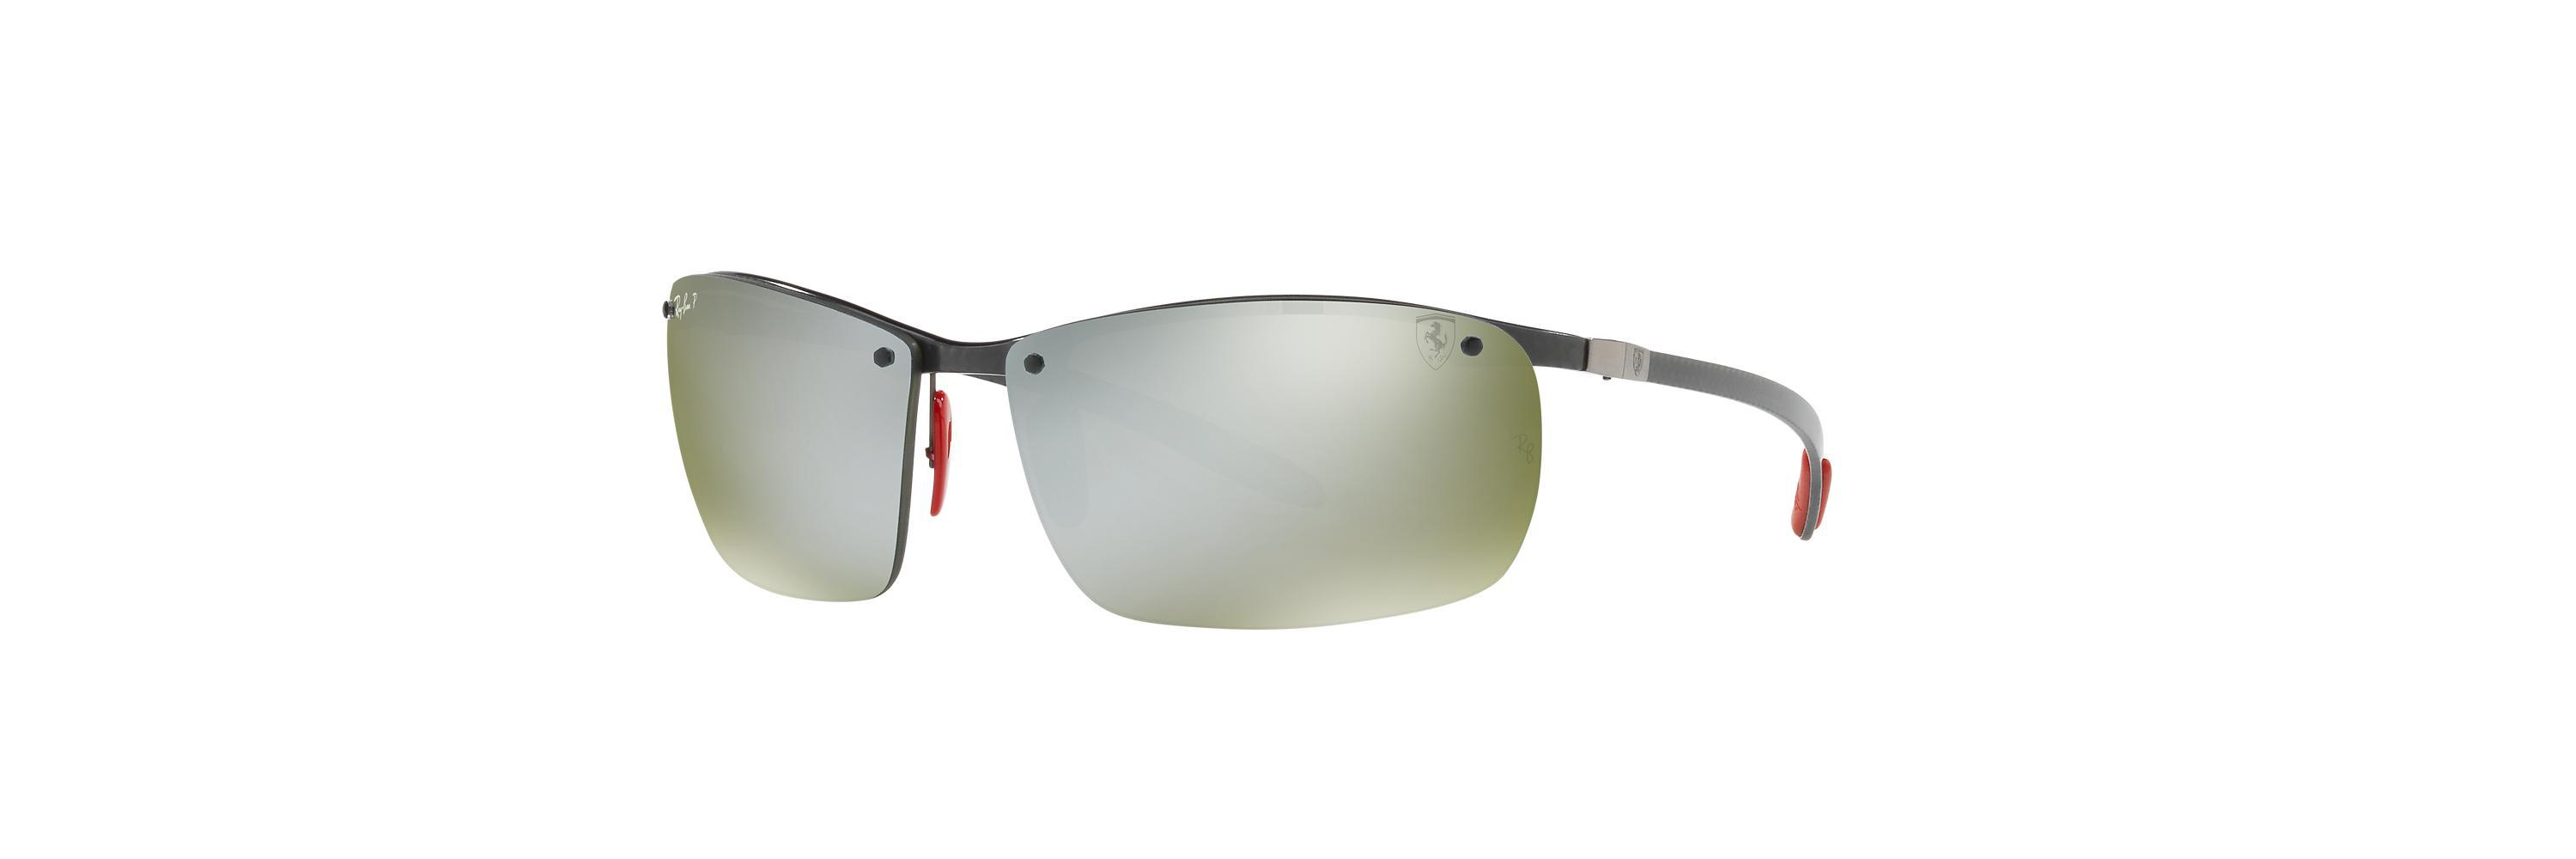 3c43eed7e358c Lyst - Ray-Ban Rb8305m Scuderia Ferrari in Green for Men